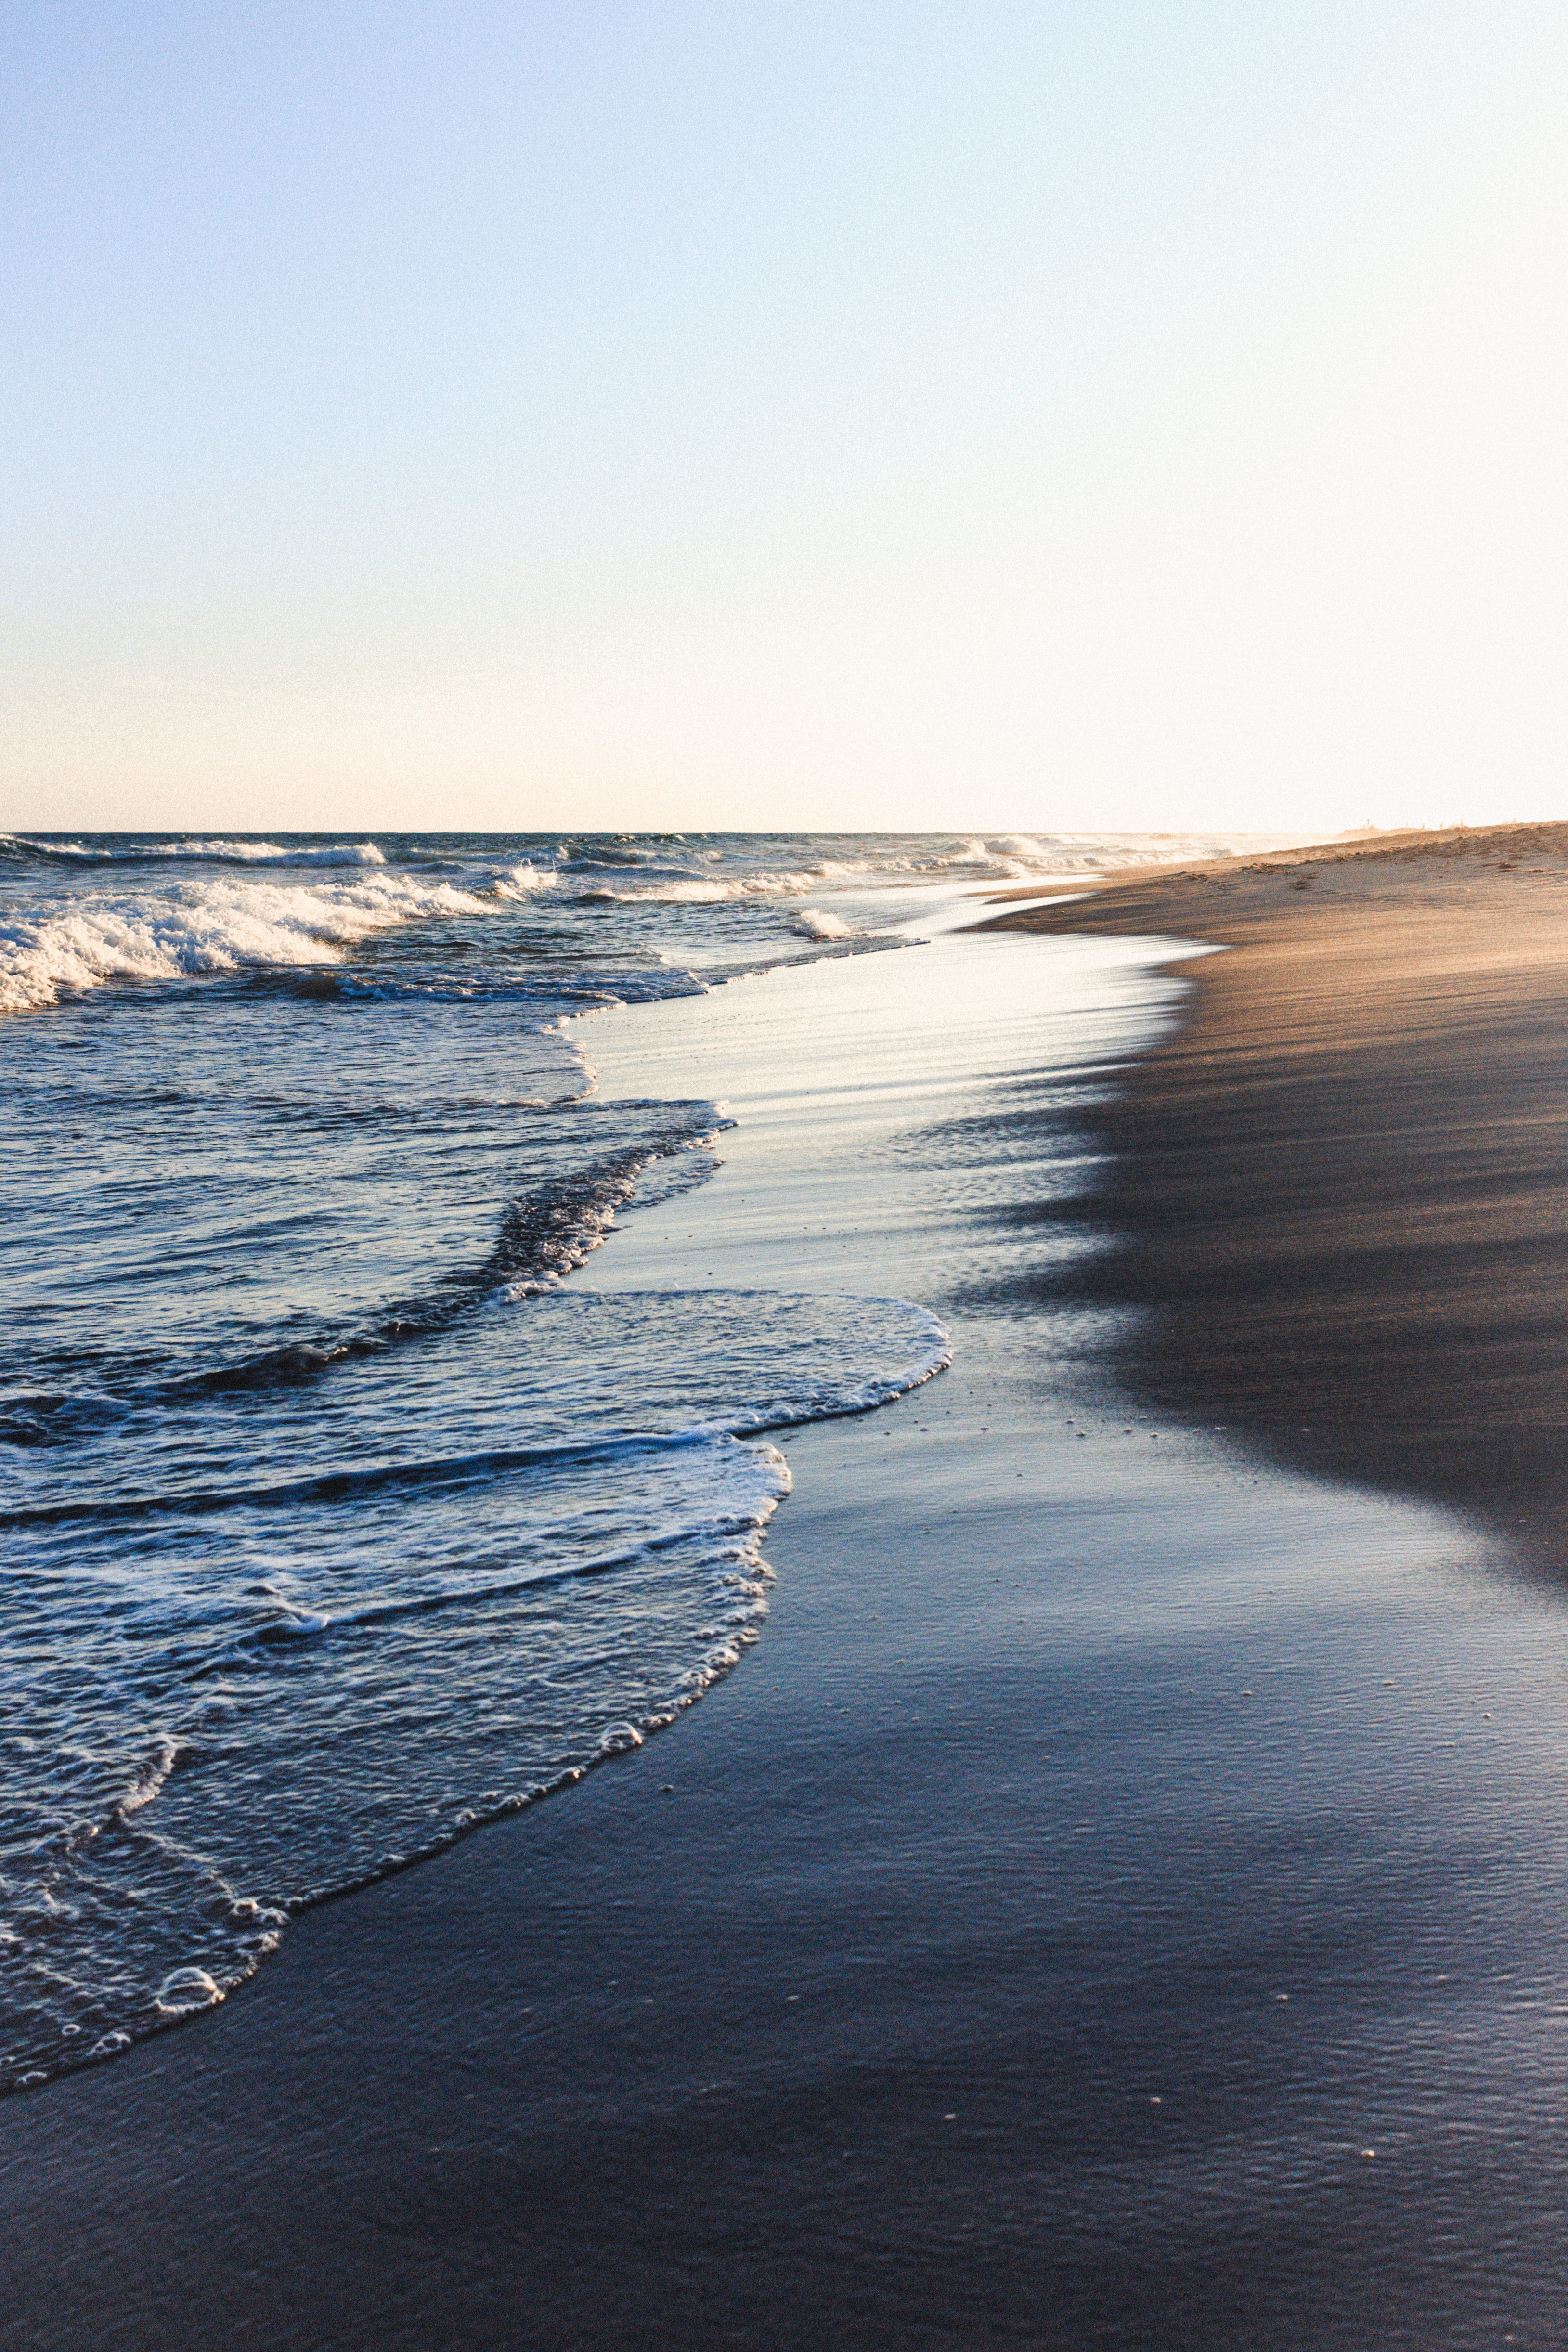 beach and sea waves during daytime